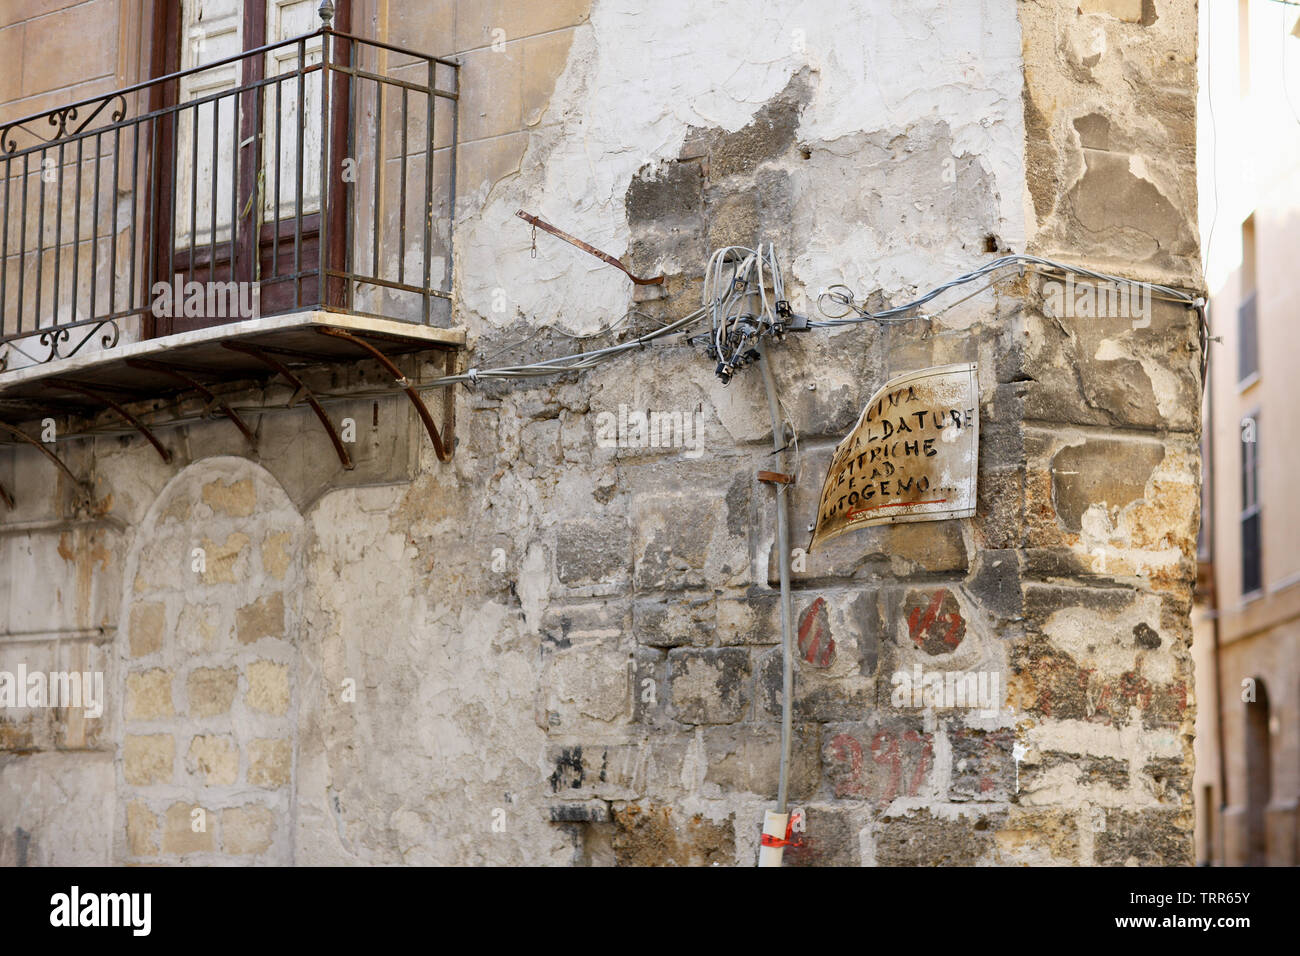 Detail of the corner of an old stone house with wiring and oldness of signboard in Palermo, Italy. Text: 'Welding work Electric and gas welding..' - Stock Image